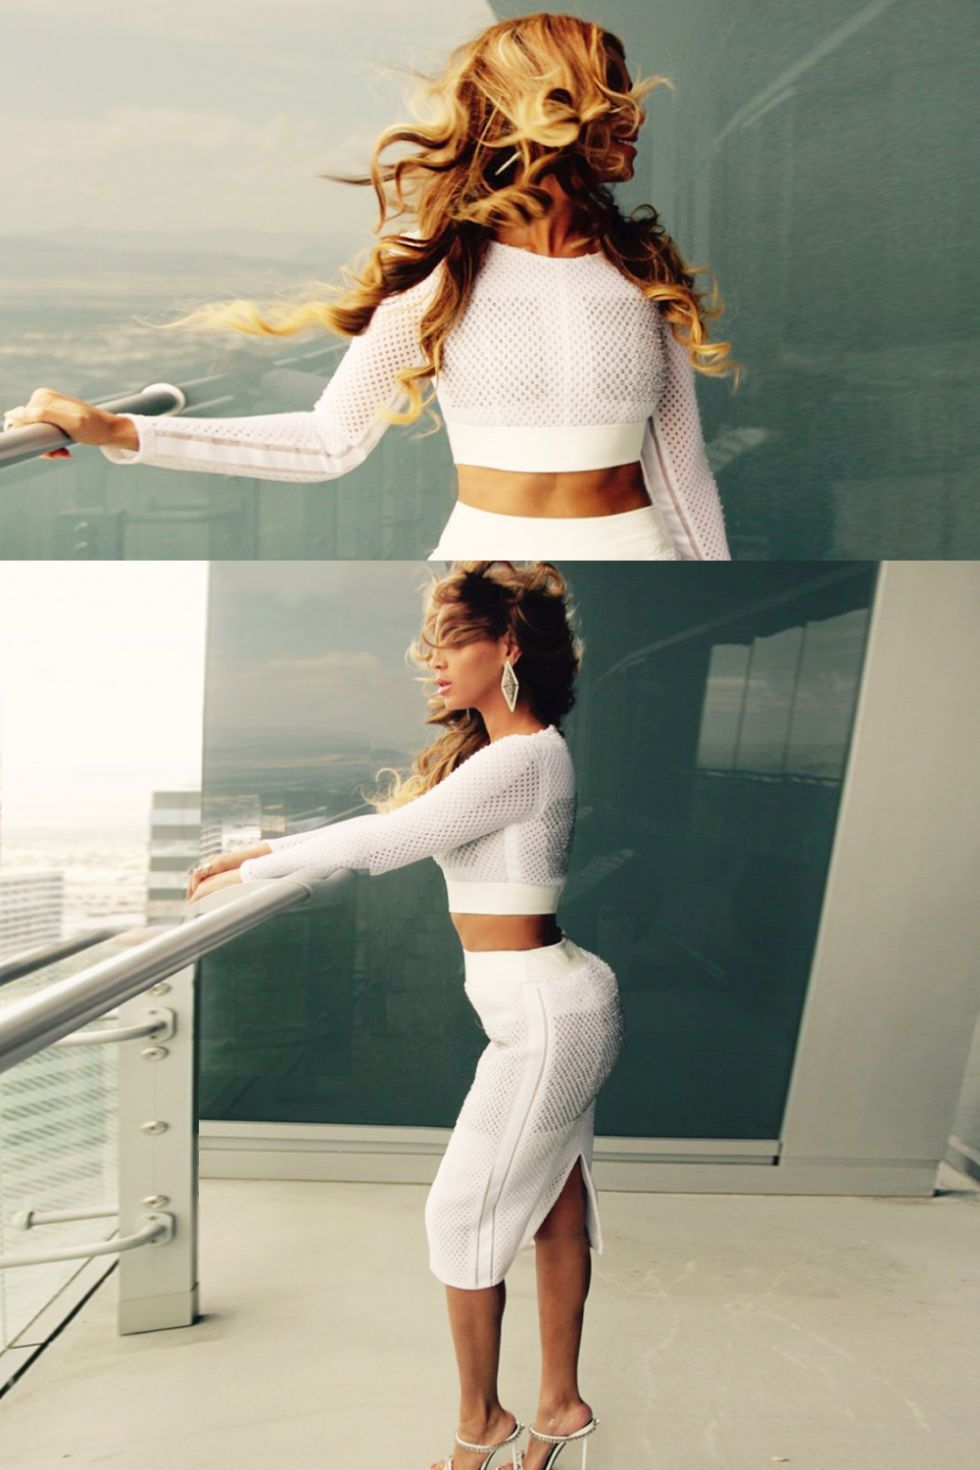 Casual flowy white dress fashion style 2015 - Beyonc Wearing Chlo Nellie Crystal Heel Mule Sandals 1 160 Beyonce Pinterest Heeled Mules Sandals And Mule Sandals